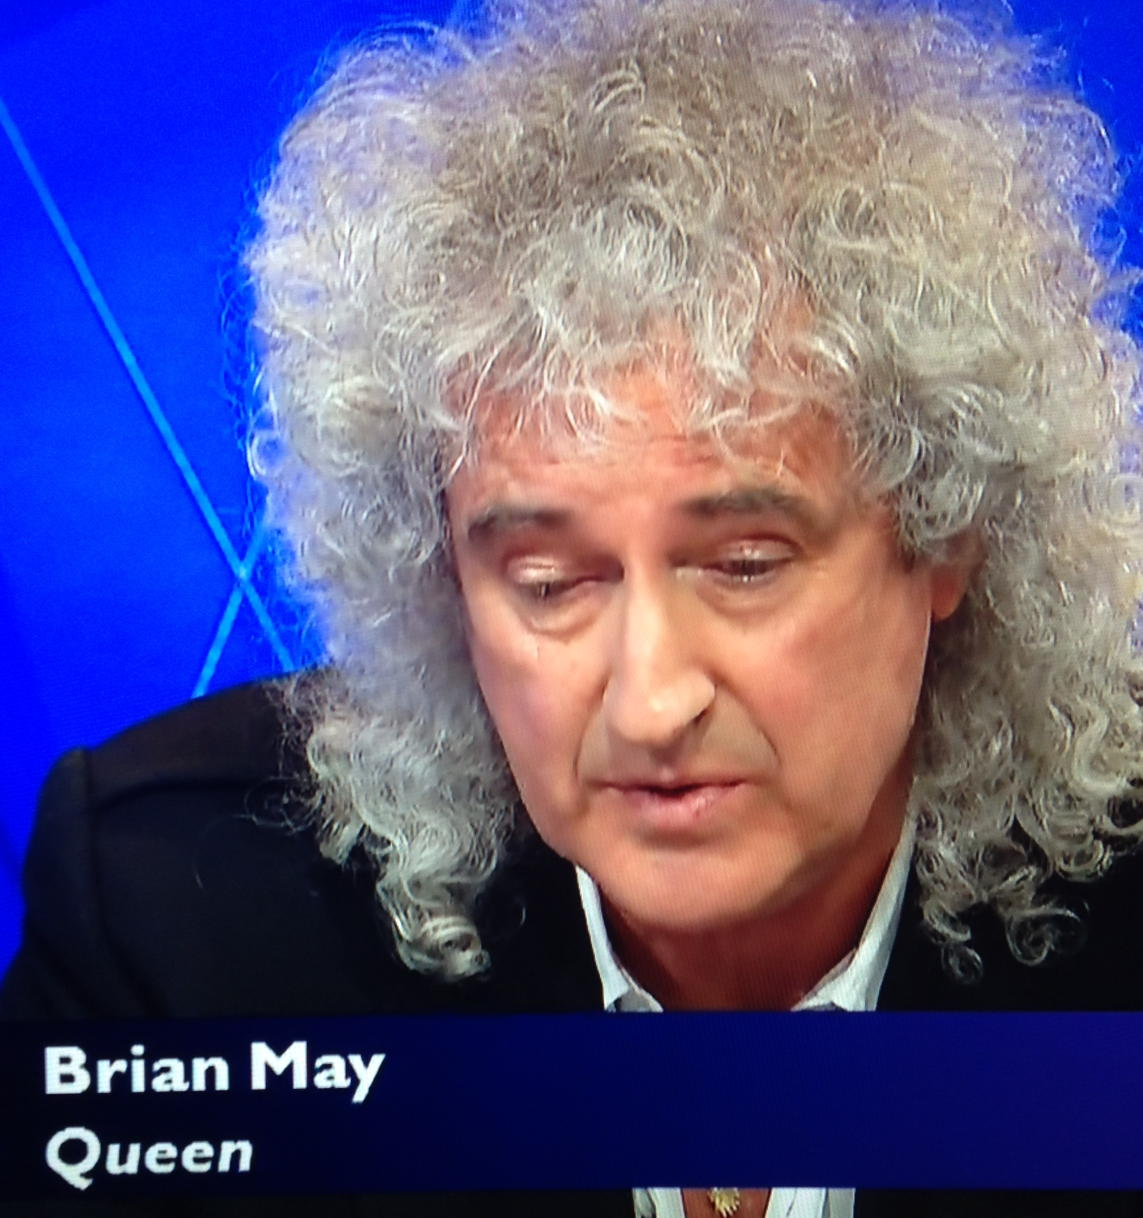 RT @TobyWoody: Anyone who didn't know that this bloke Brian May used to be in a band might be very confused by the caption  #bbcqt http://t…